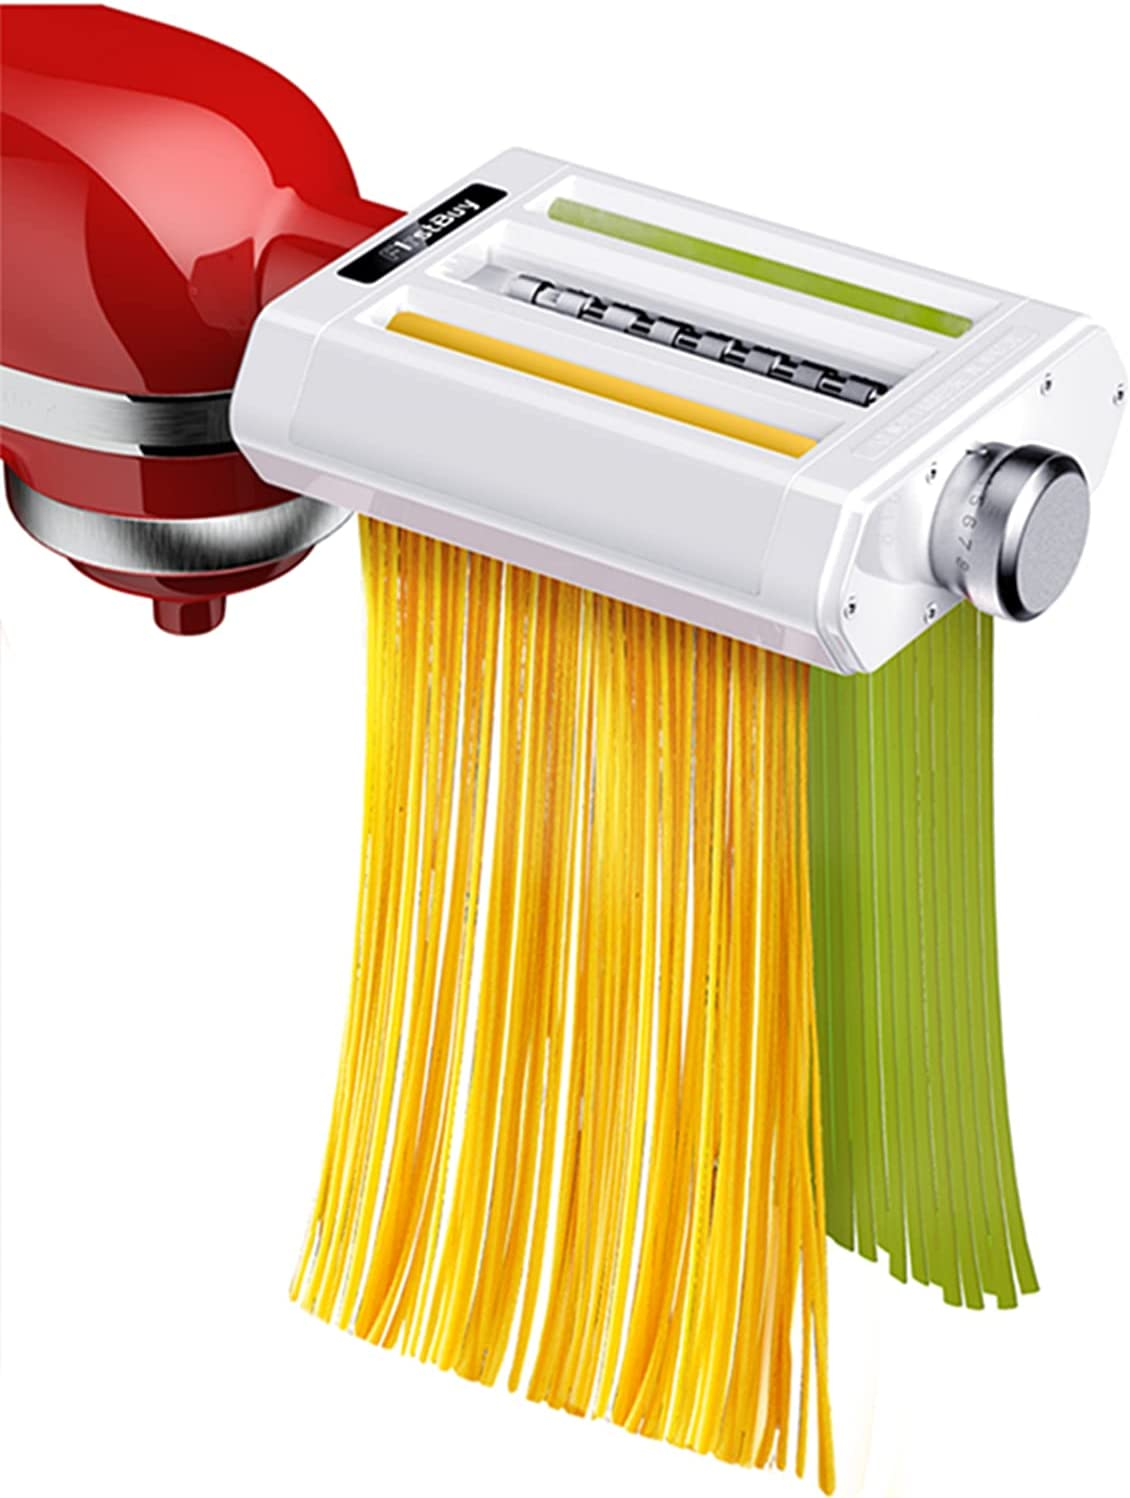 FirstBuy Pasta Maker Attachment for Kitchenaid Stand Mixers, 3 i